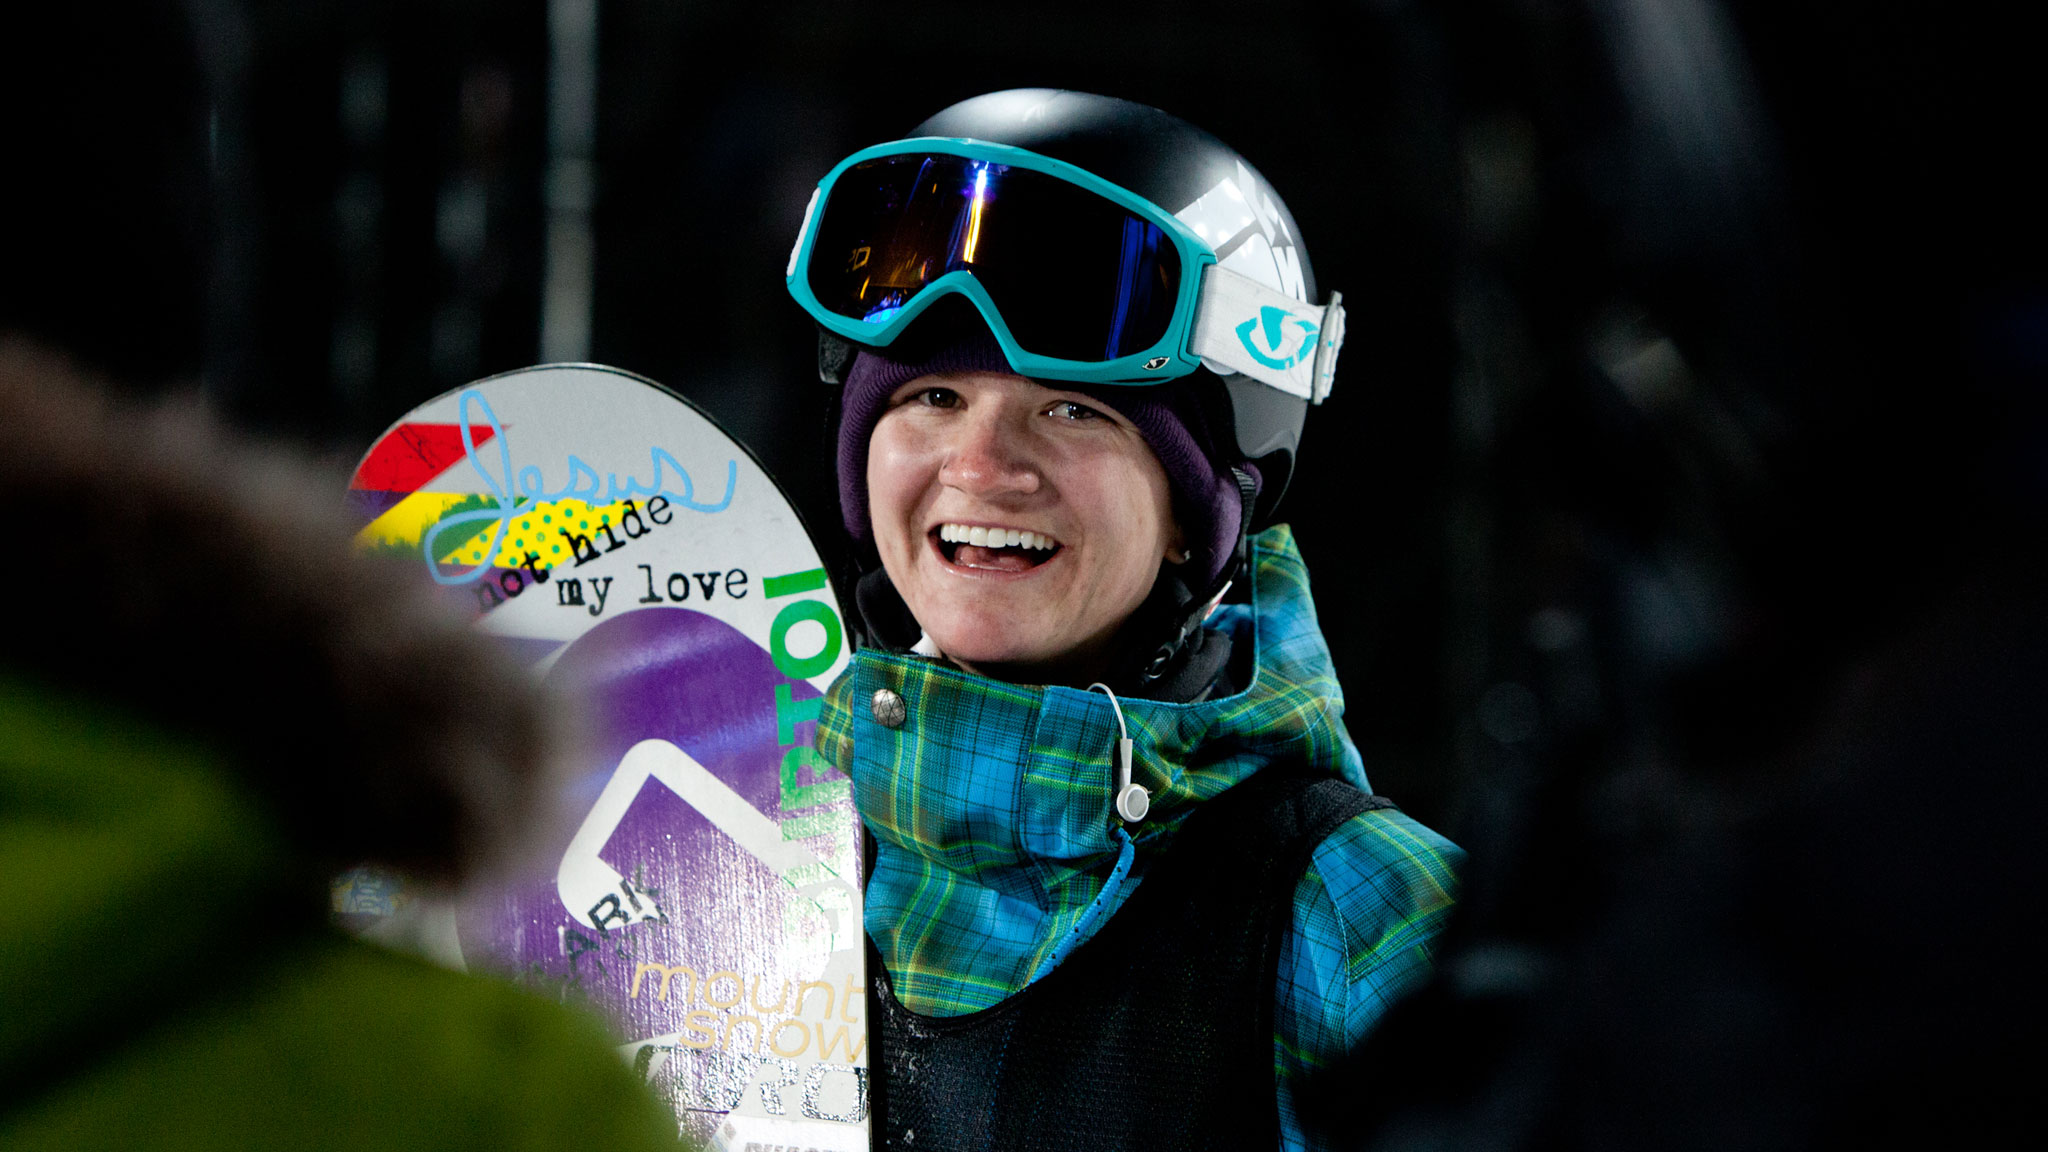 Kelly Clark became the first woman to land a 1080 in competition, at the X Games in 2011.